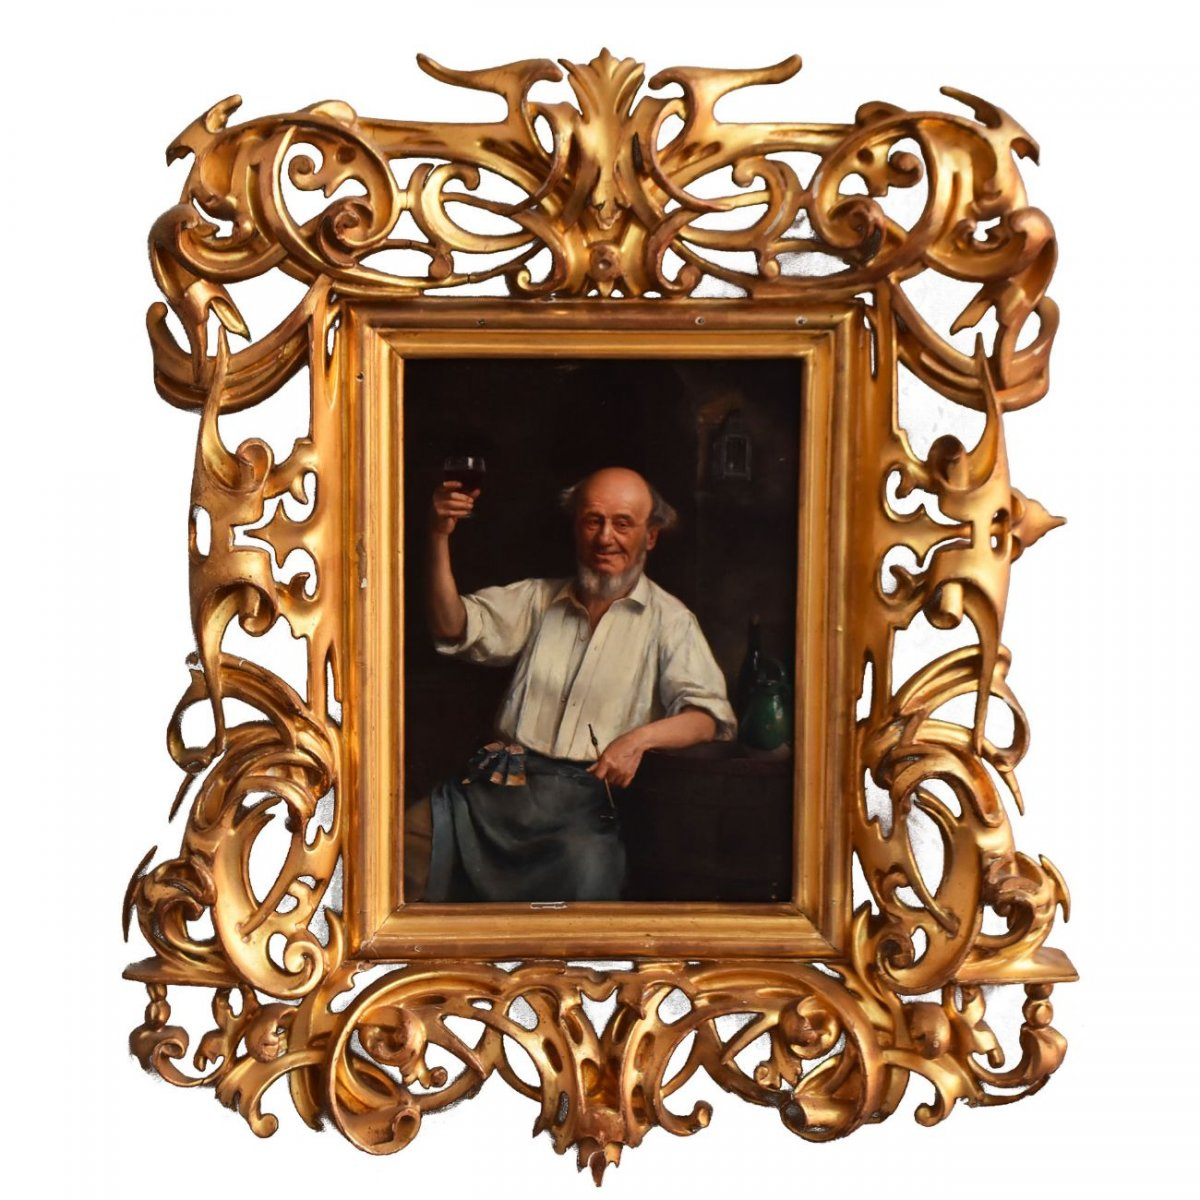 Portrait Of A Man Toasting Signed T Bérengier 1880 In A Very Beautiful Openwork Frame In Golden Wood